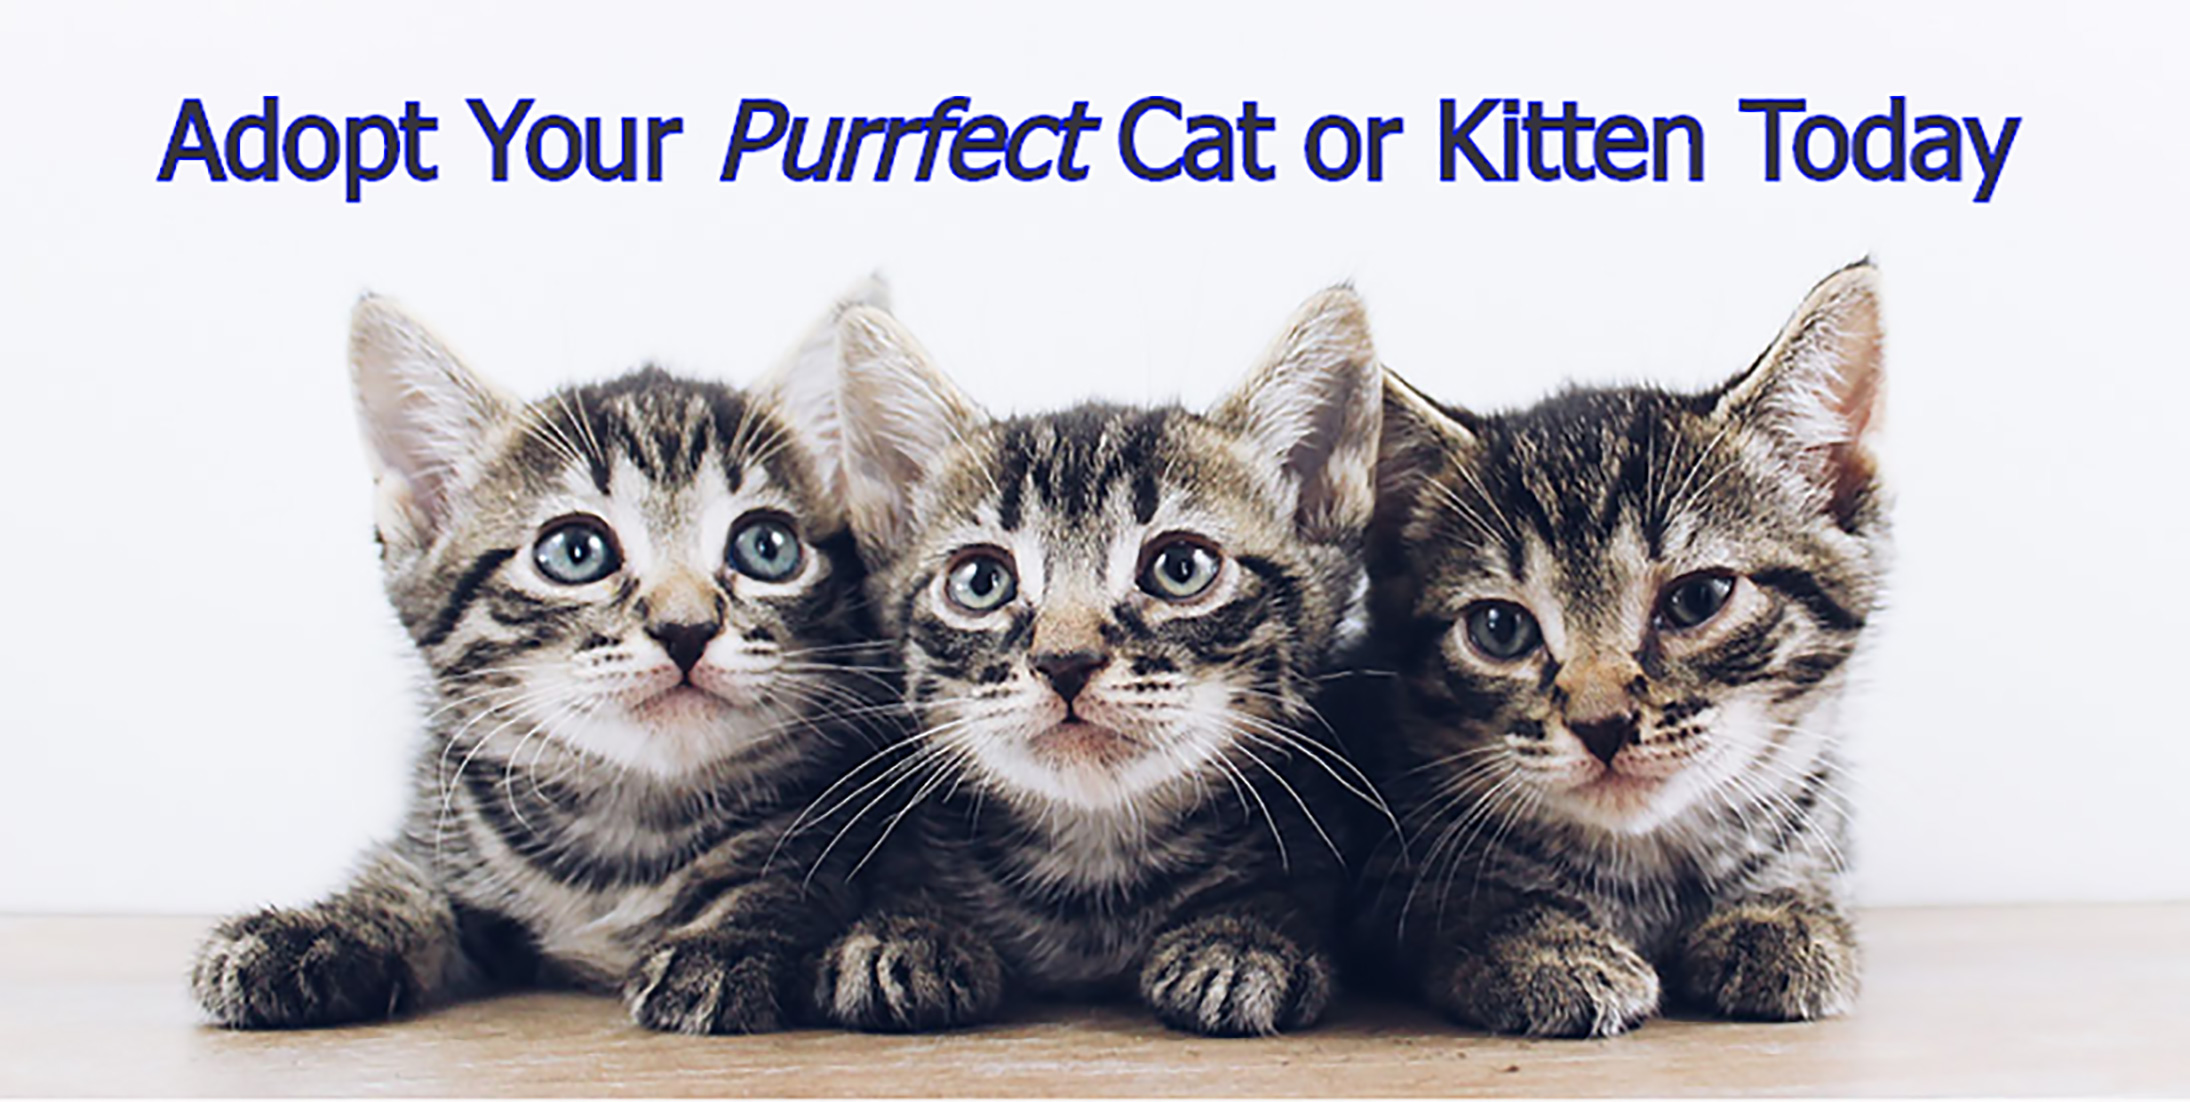 Adopt your perfect cat or kitten today!